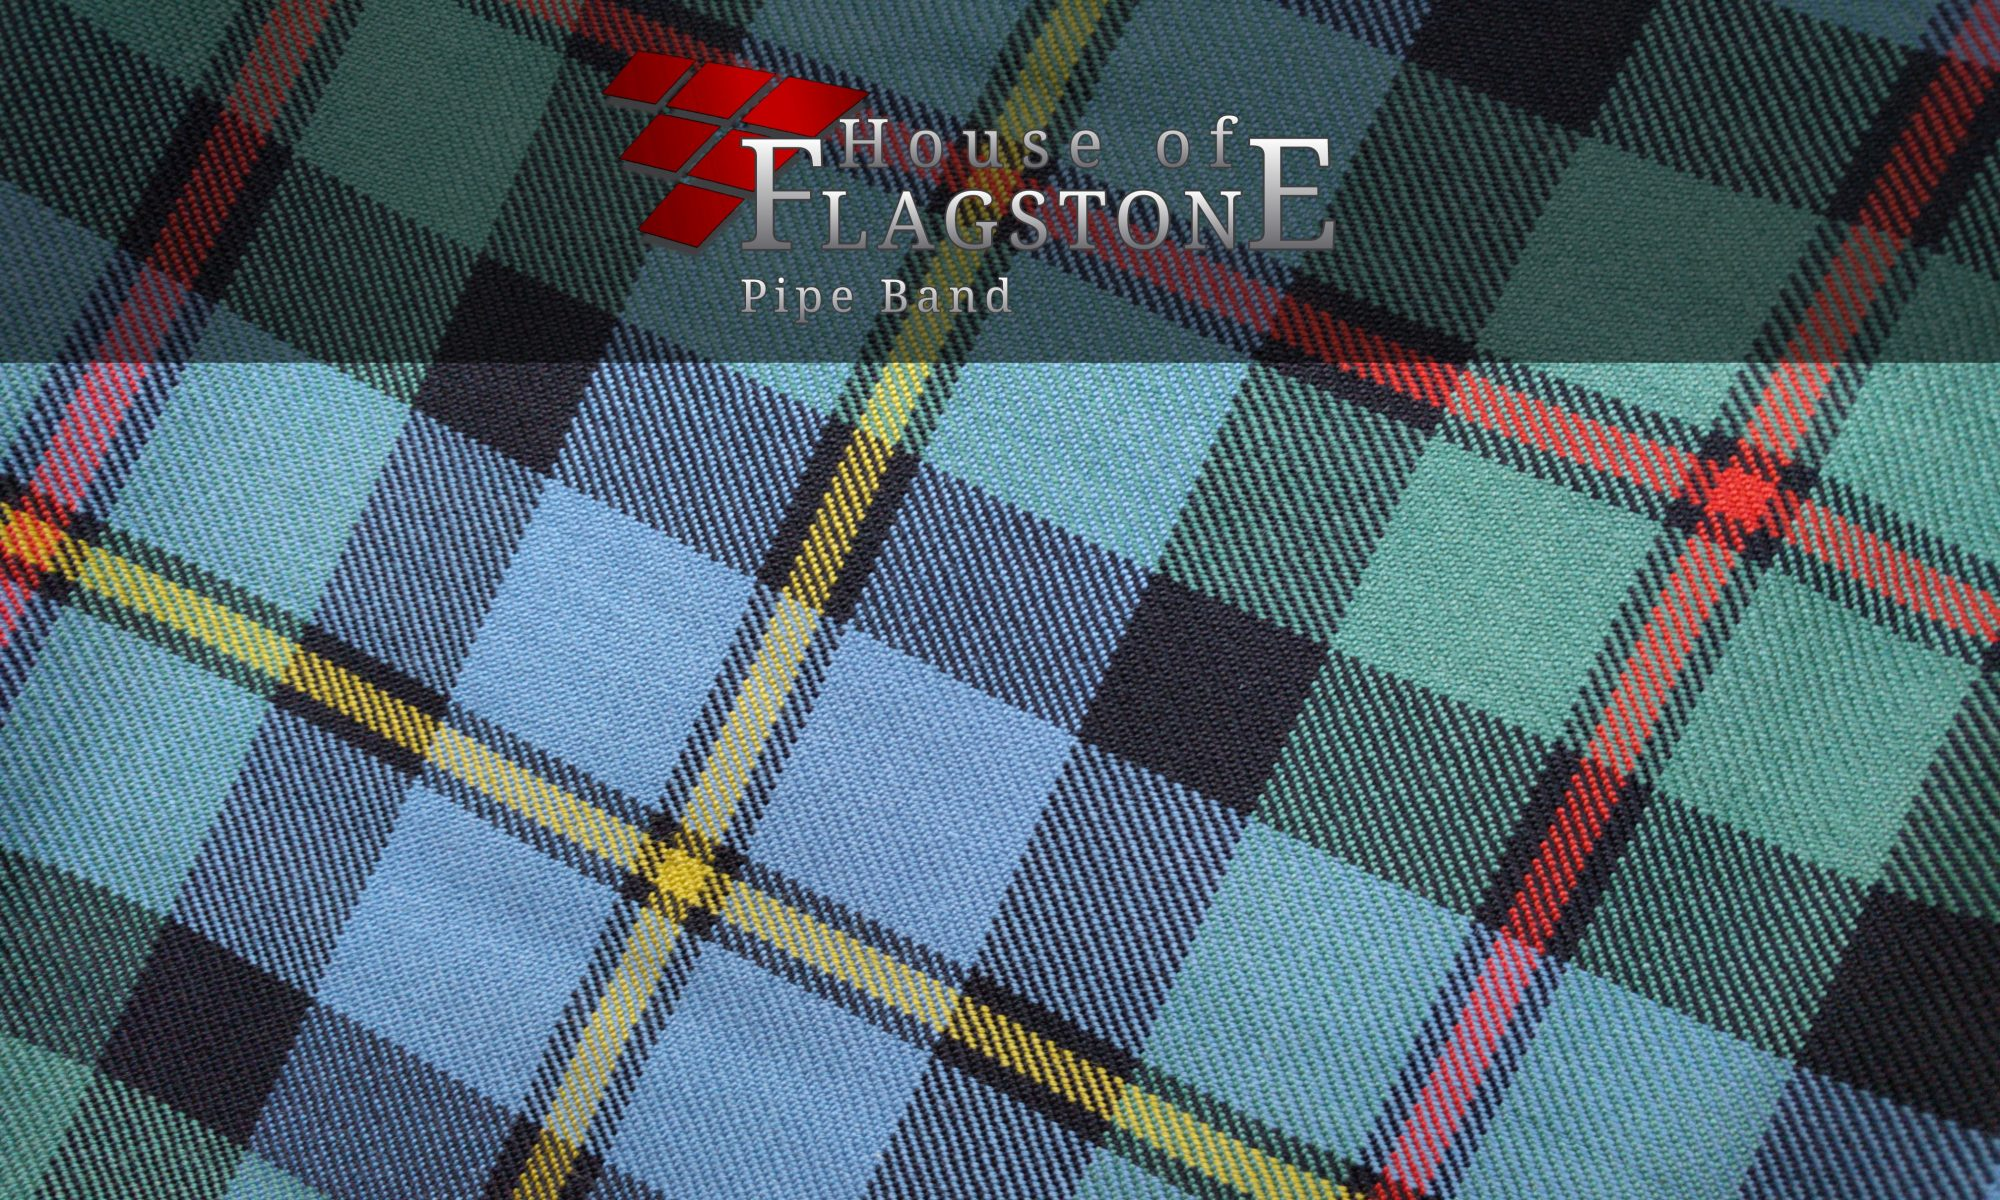 House of Flagstone Pipe Band